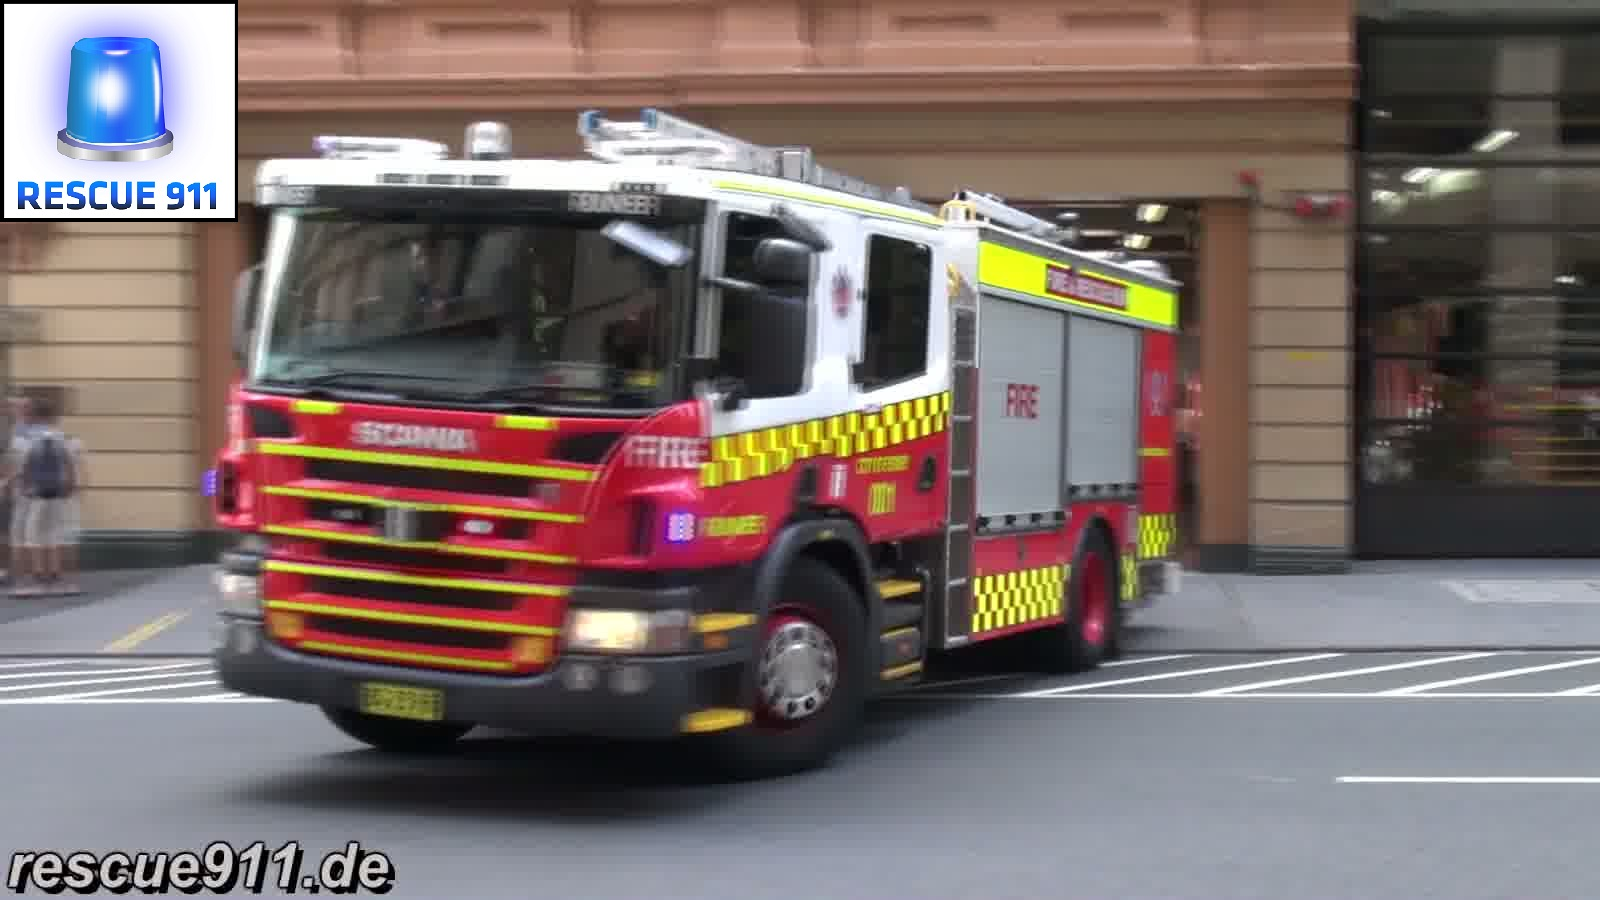 Pump Flyer 001 + Pump Runner 001 Sydney Fire & Rescue NSW (collection) (stream)